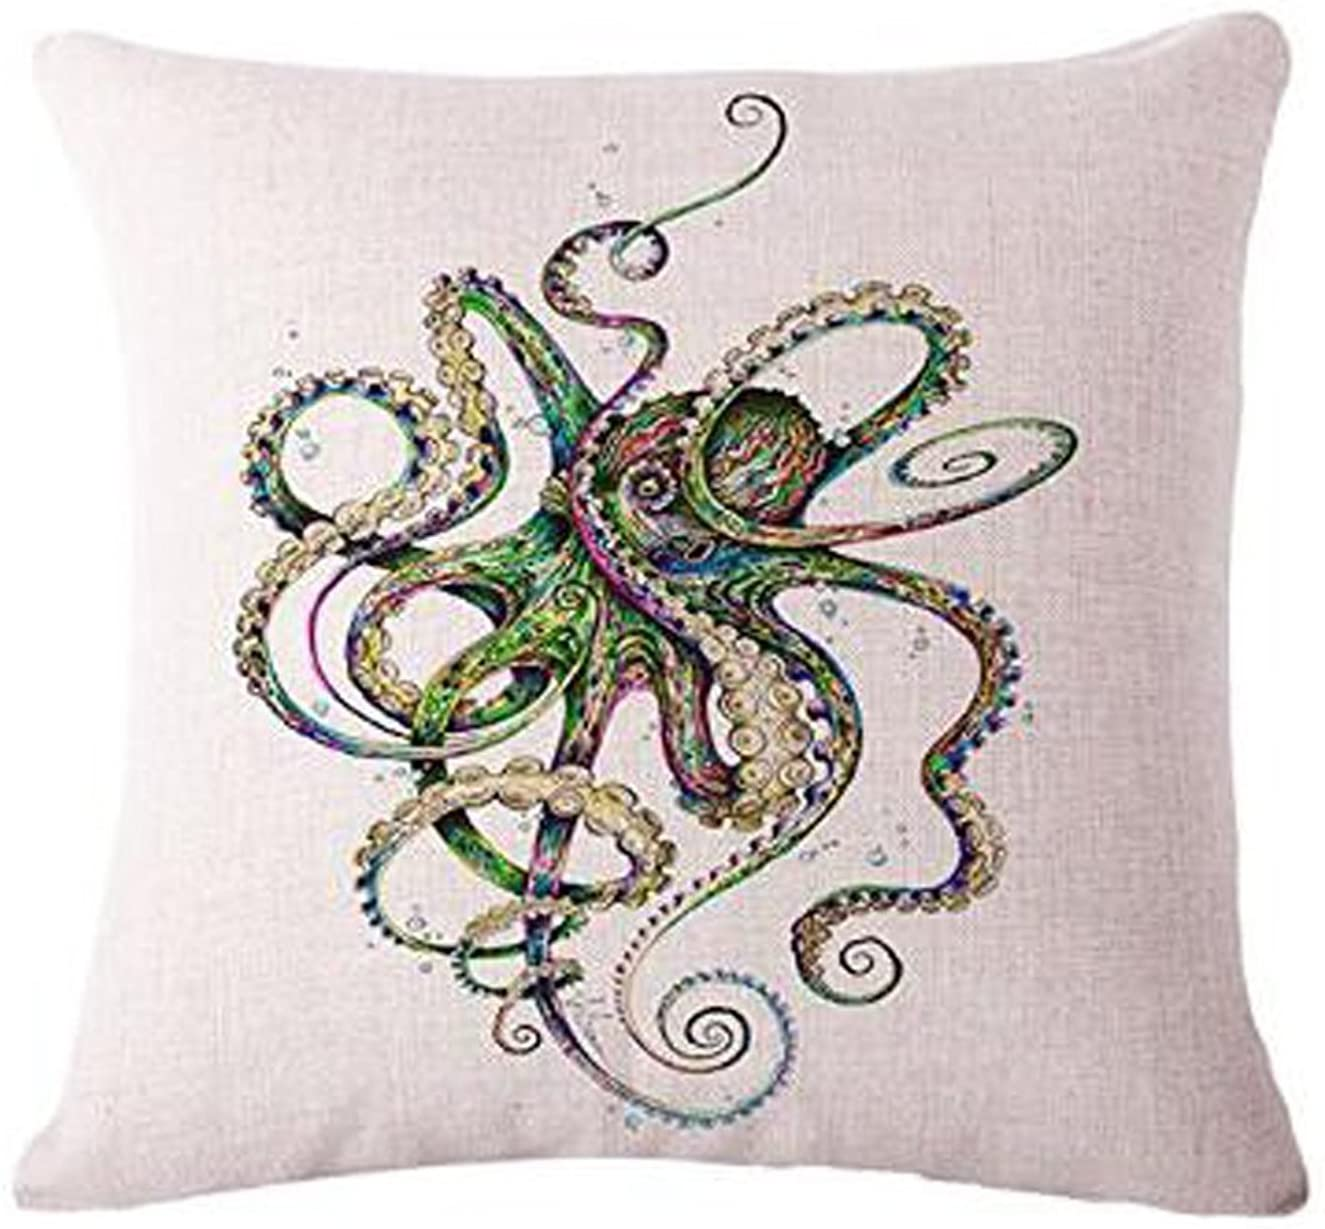 The Animal Abstract watercolor painting octopus Throw Pillow Case Cushion Cover Decorative Cotton Blend Linen Pillowcase for Sofa 18